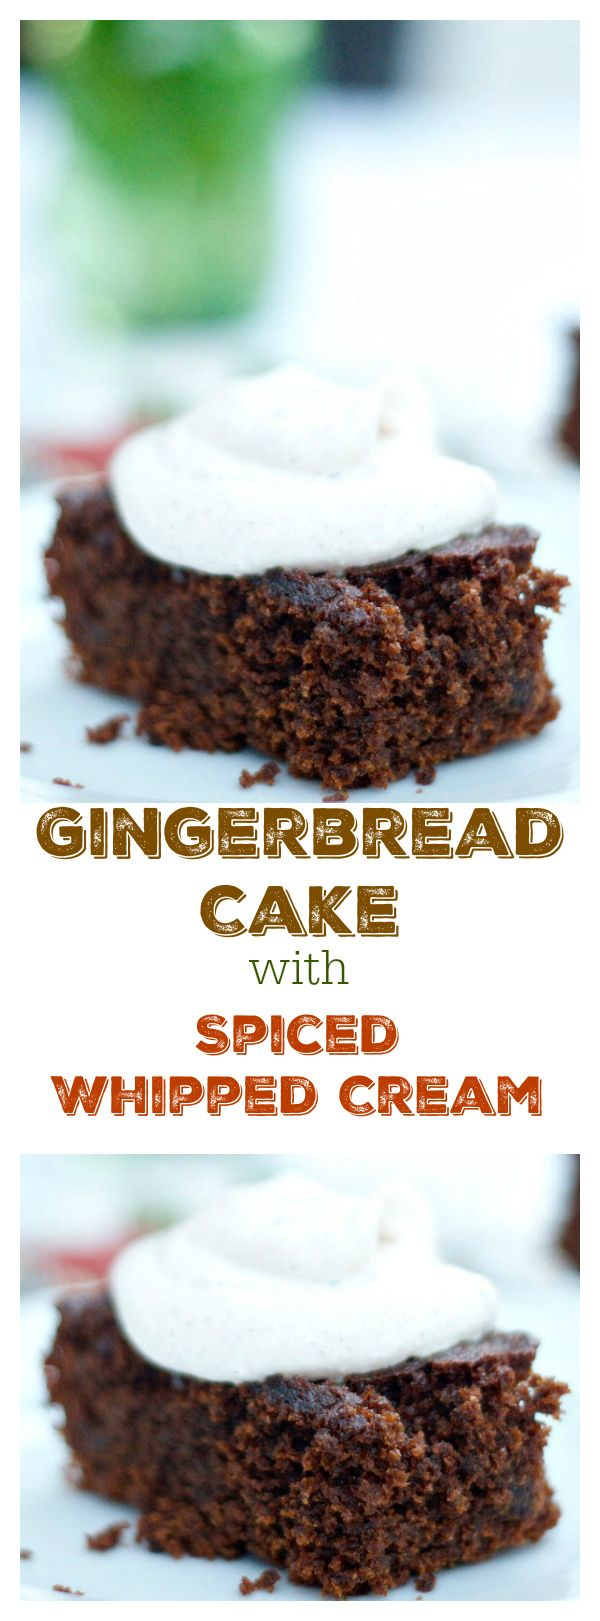 1000+ images about Cakes on Pinterest | Sheet cakes, Bundt cakes and ...